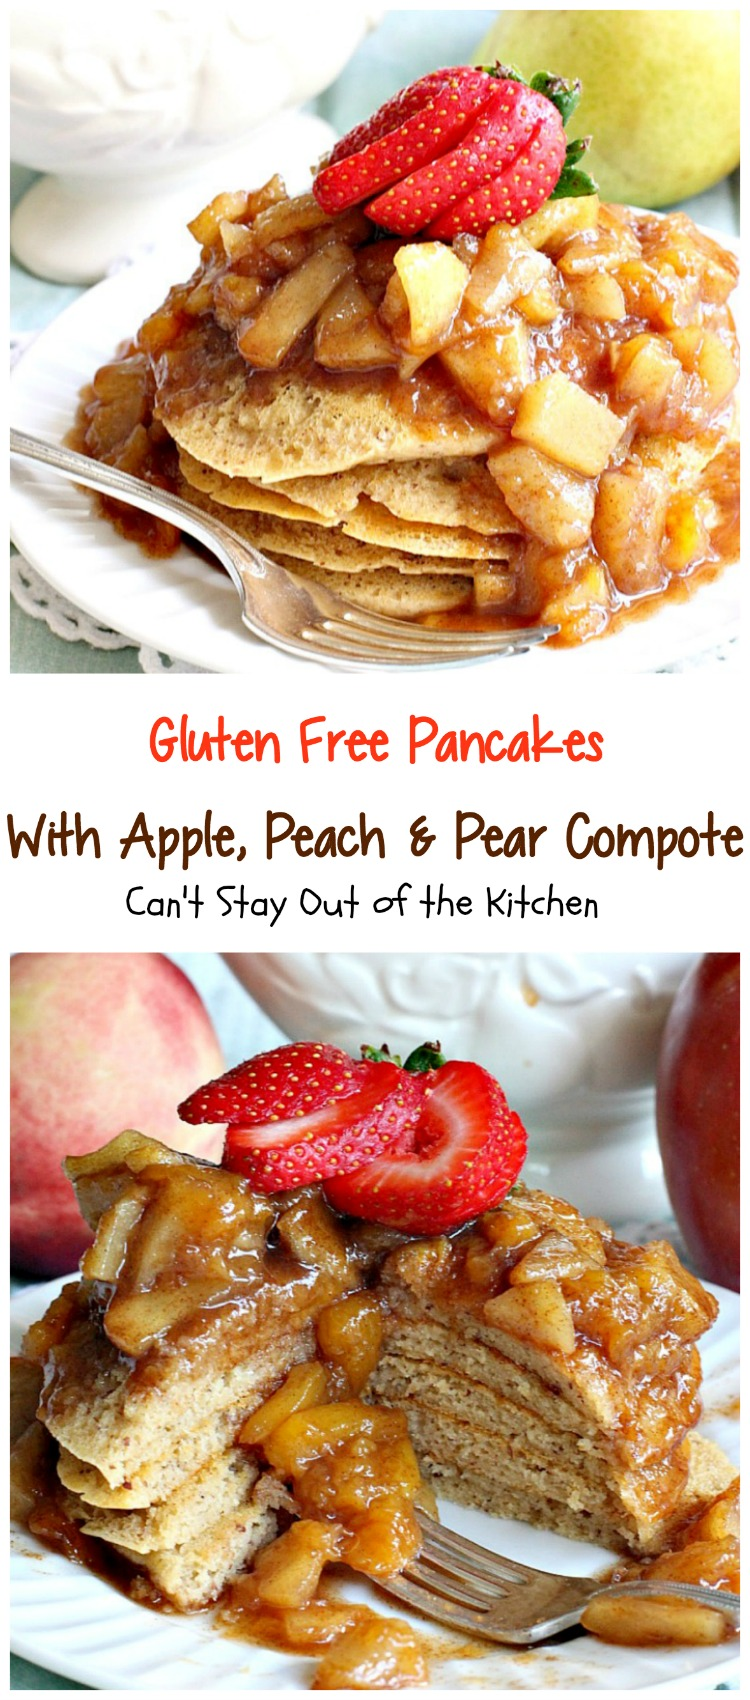 Gluten free pancakes with apple peach amp pear compote can t stay out